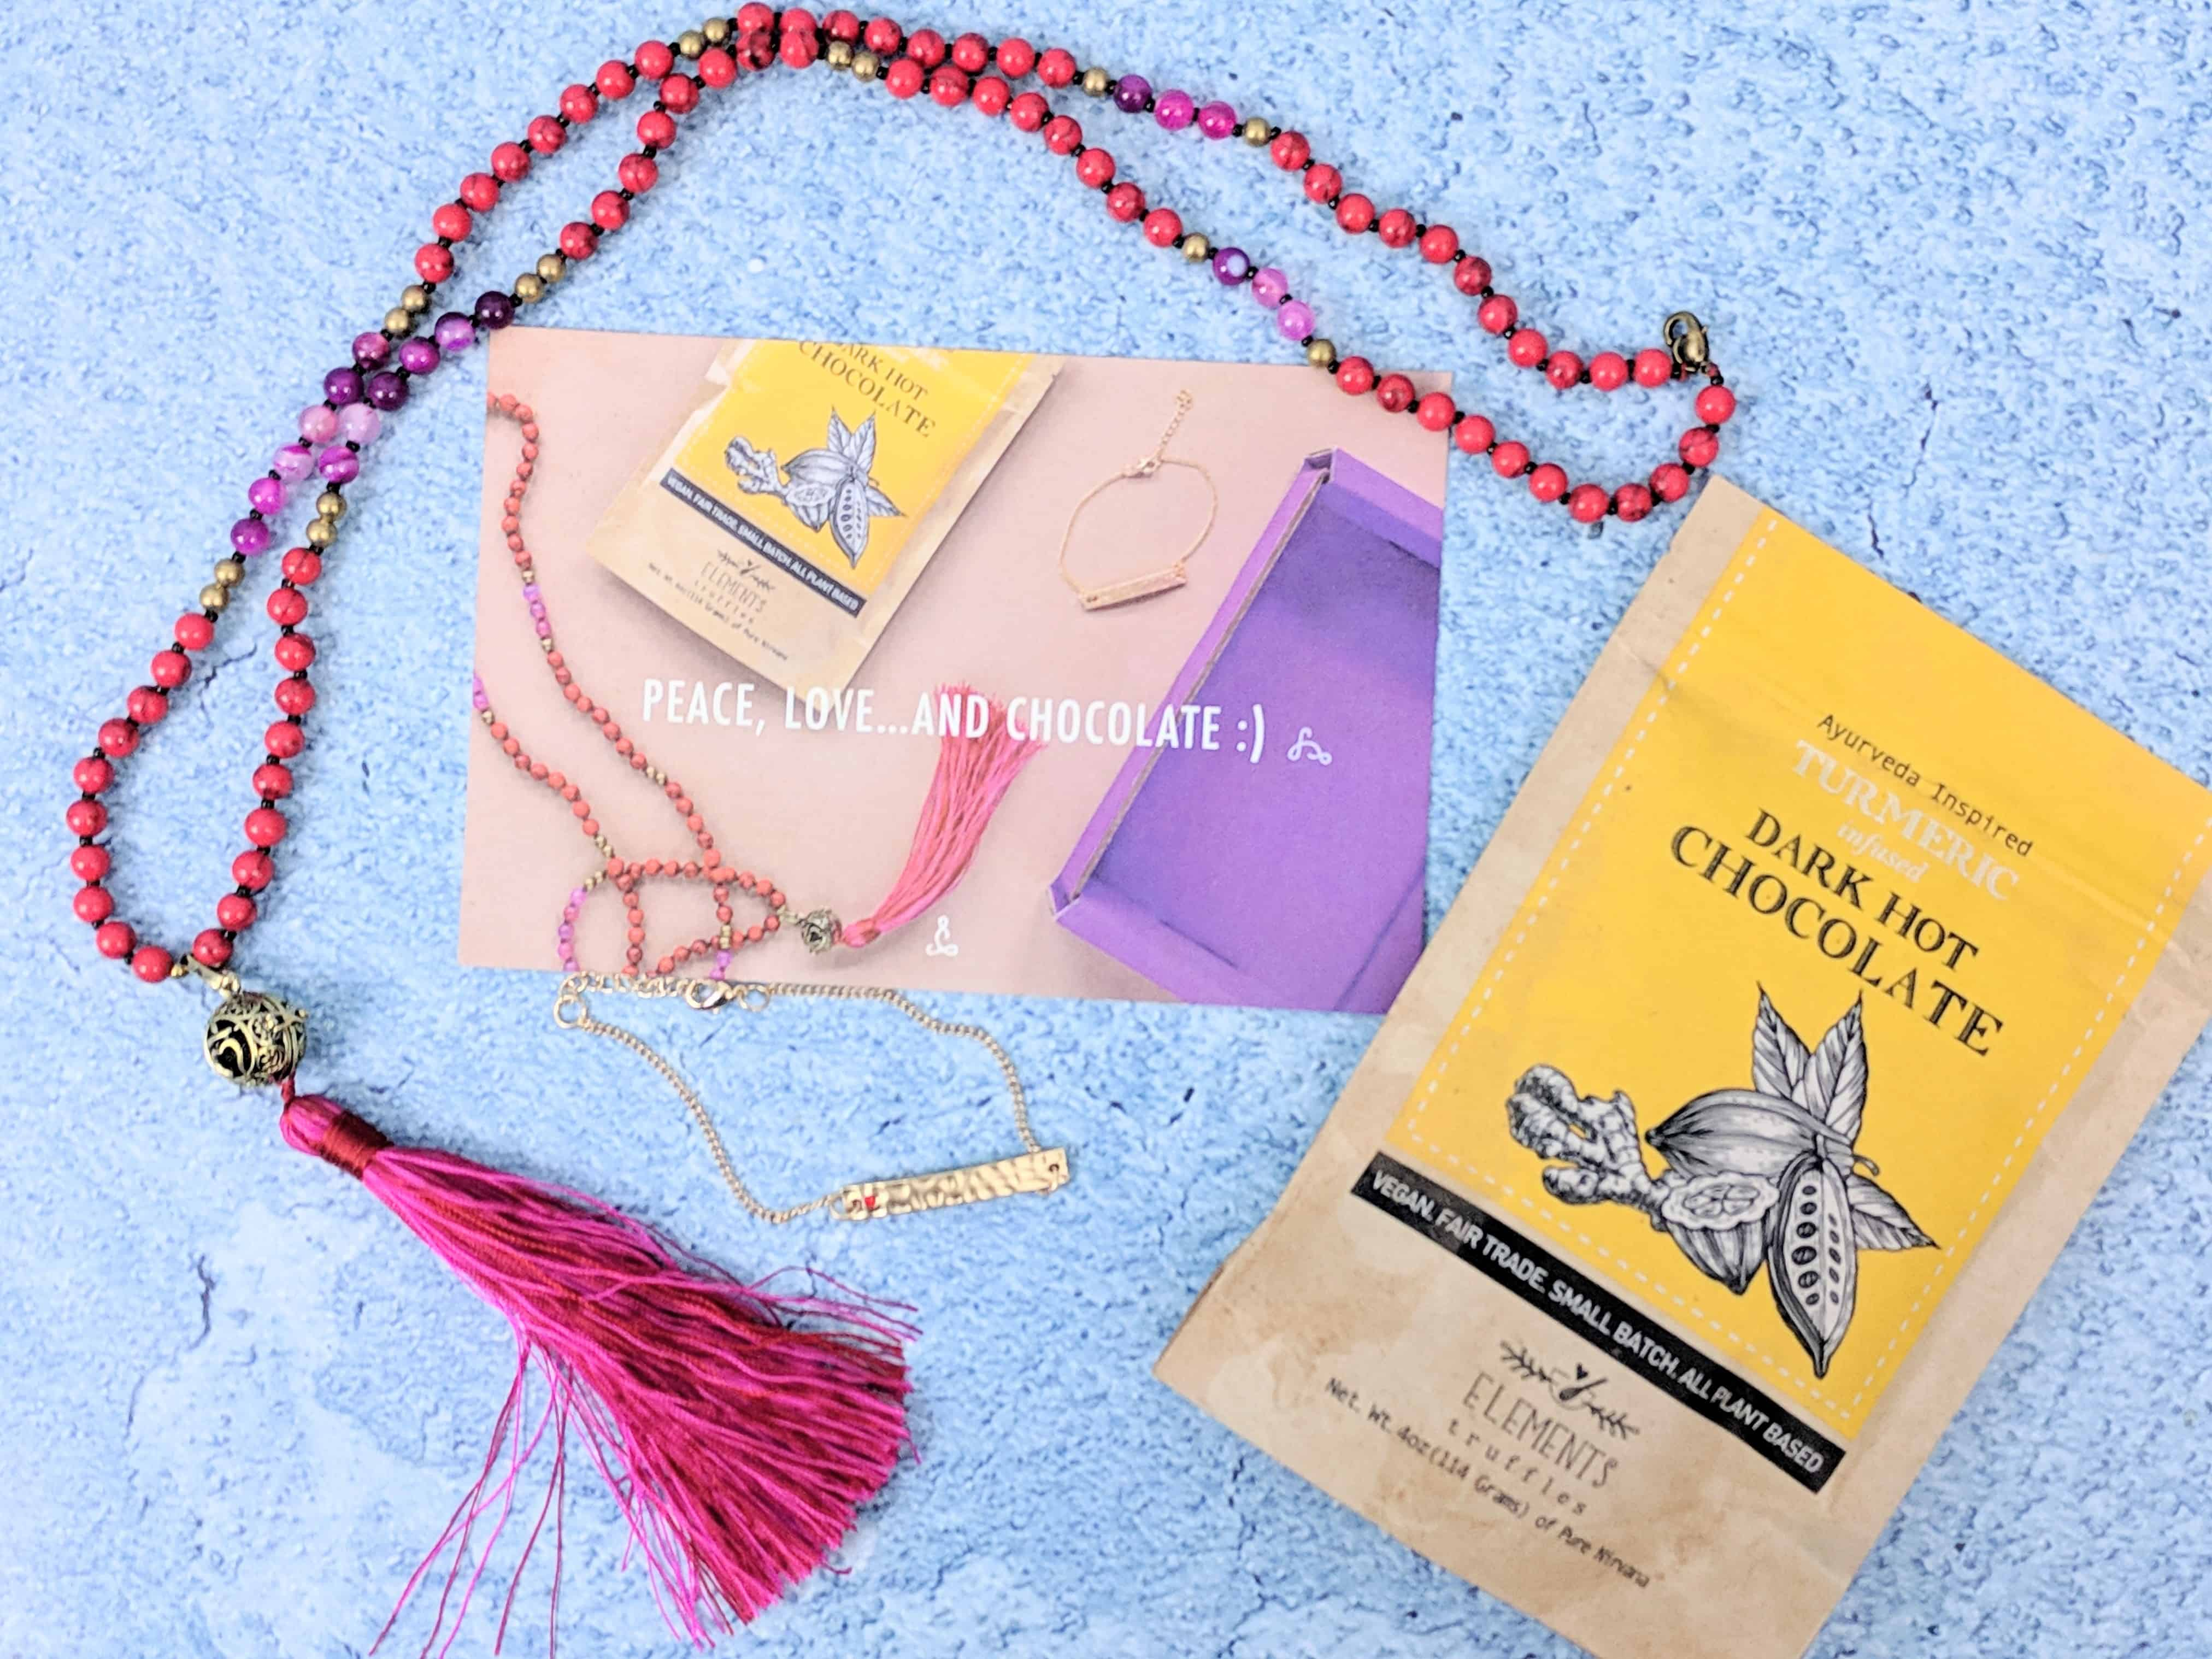 Yogi Surprise Jewelry Box December 2018 Subscription Review + Coupon